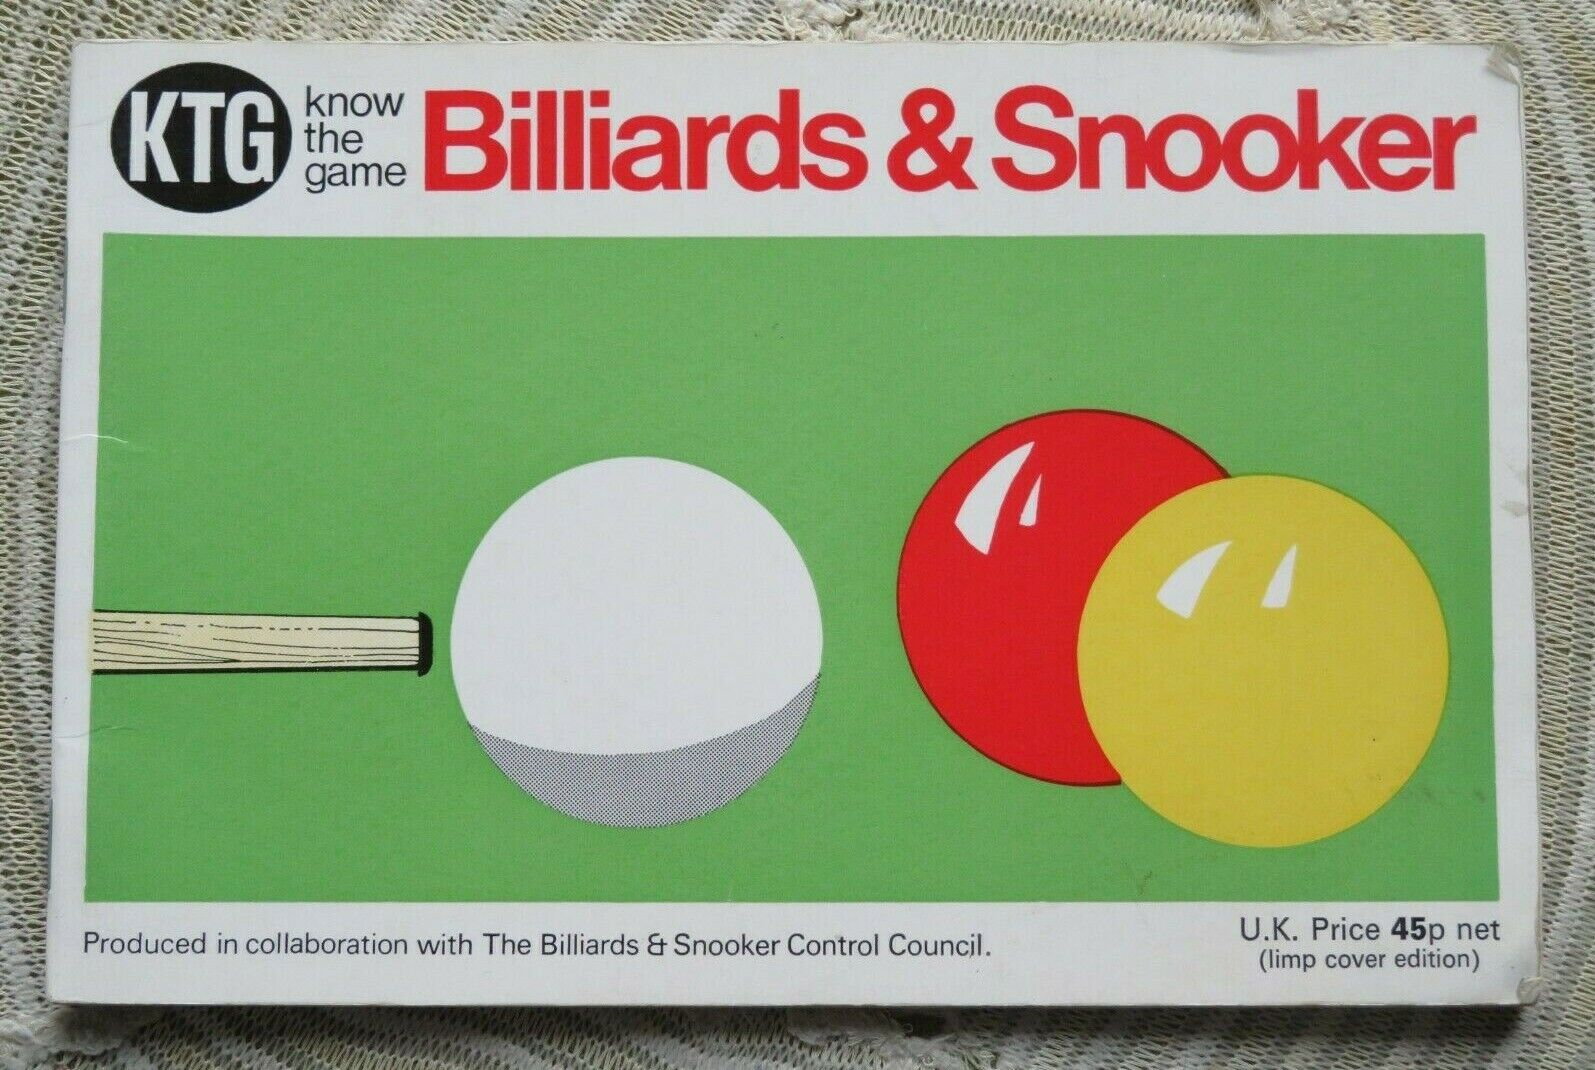 'Know the Game : Billiards and Snooker' 1974 edition